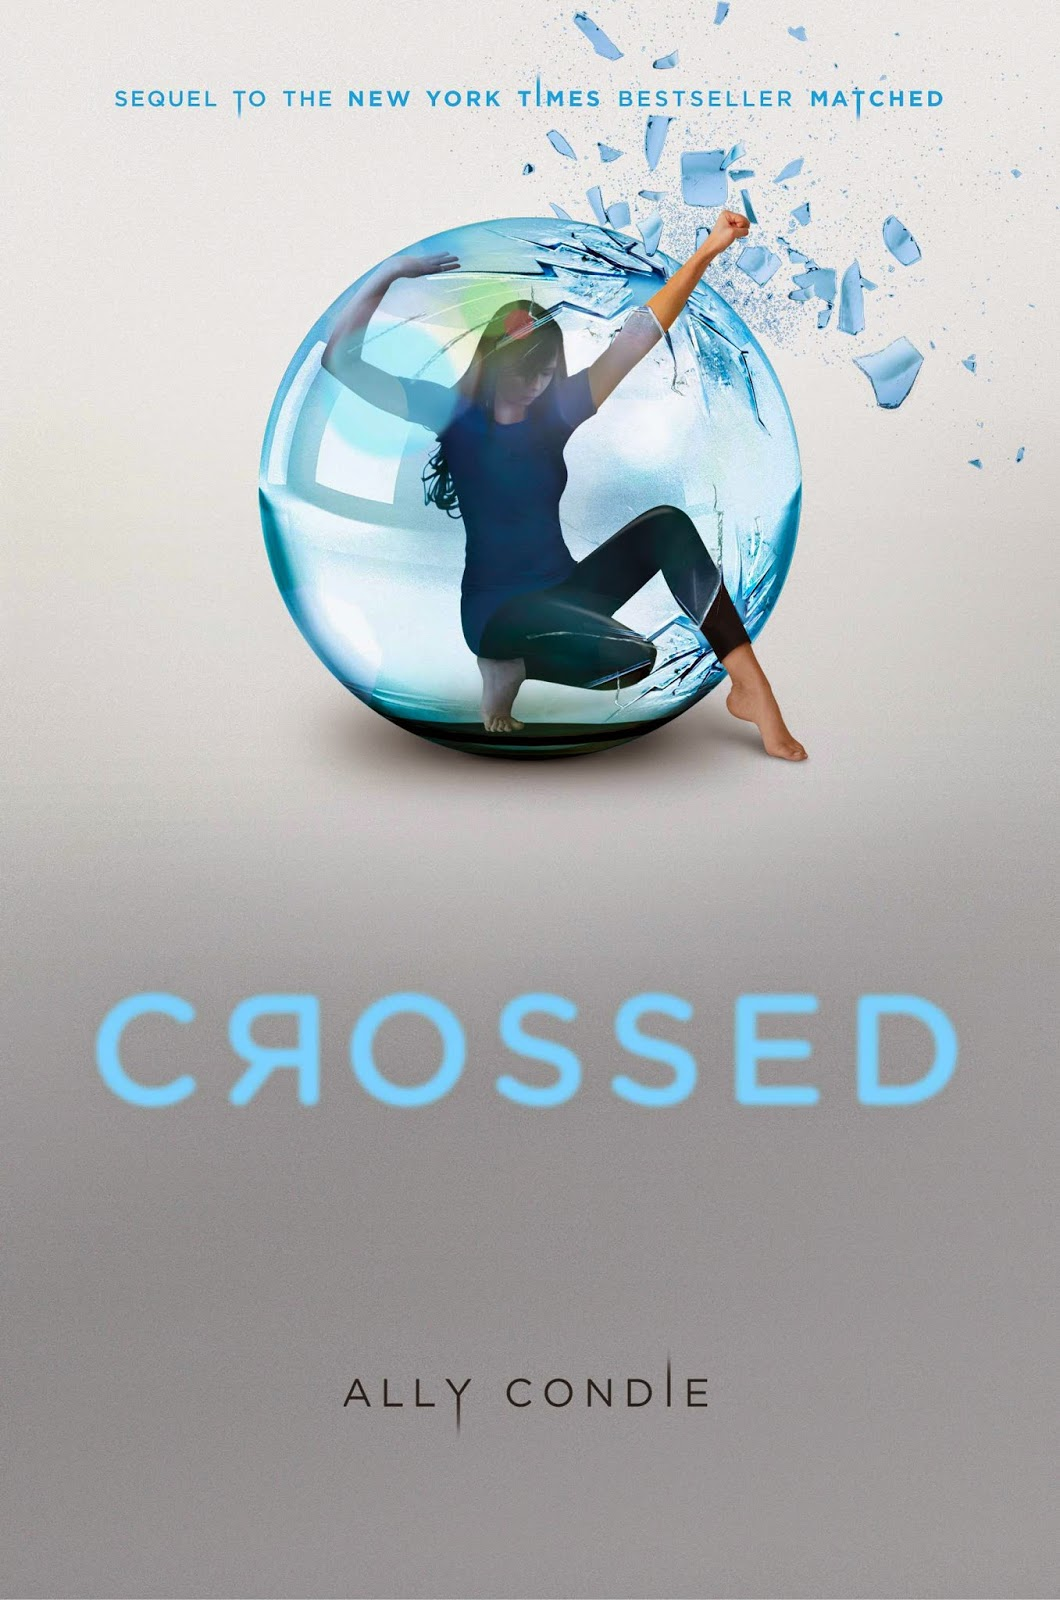 http://www.goodreads.com/book/show/15812814-crossed